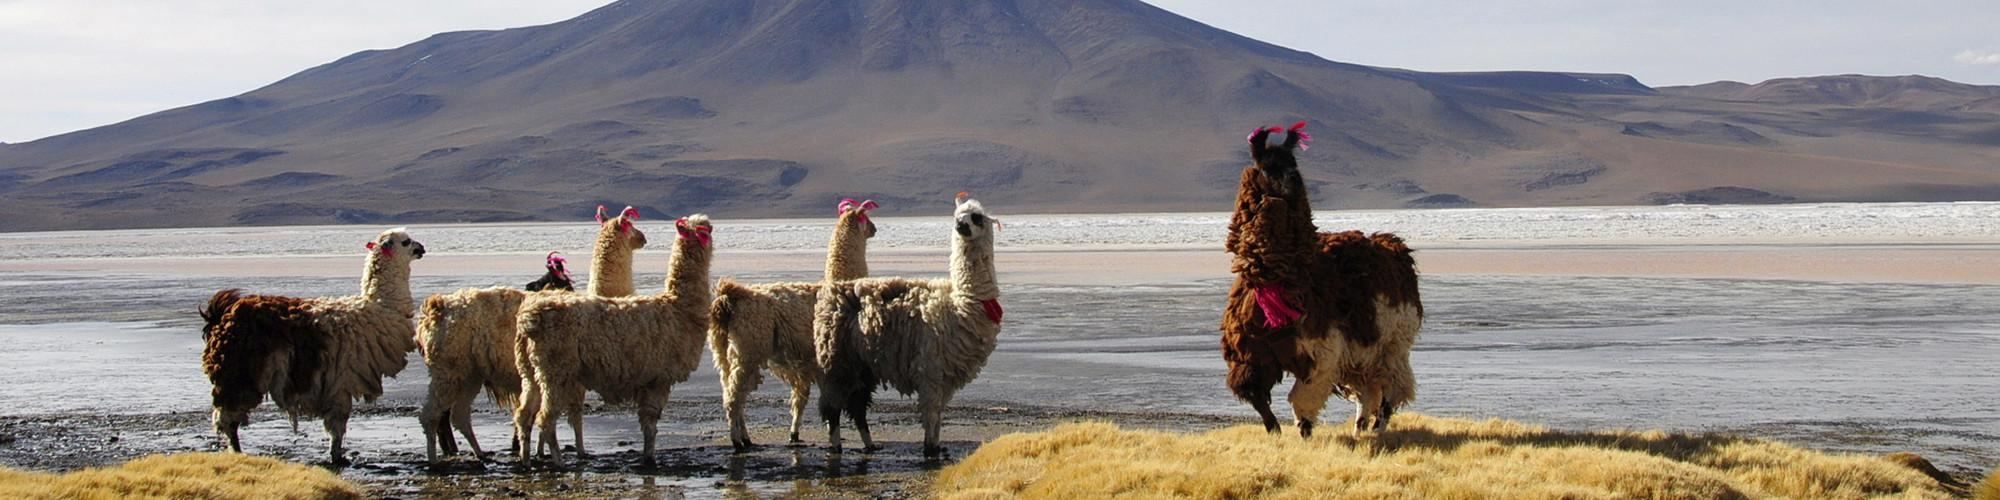 Bolivia in April 2019 Tours & Trips